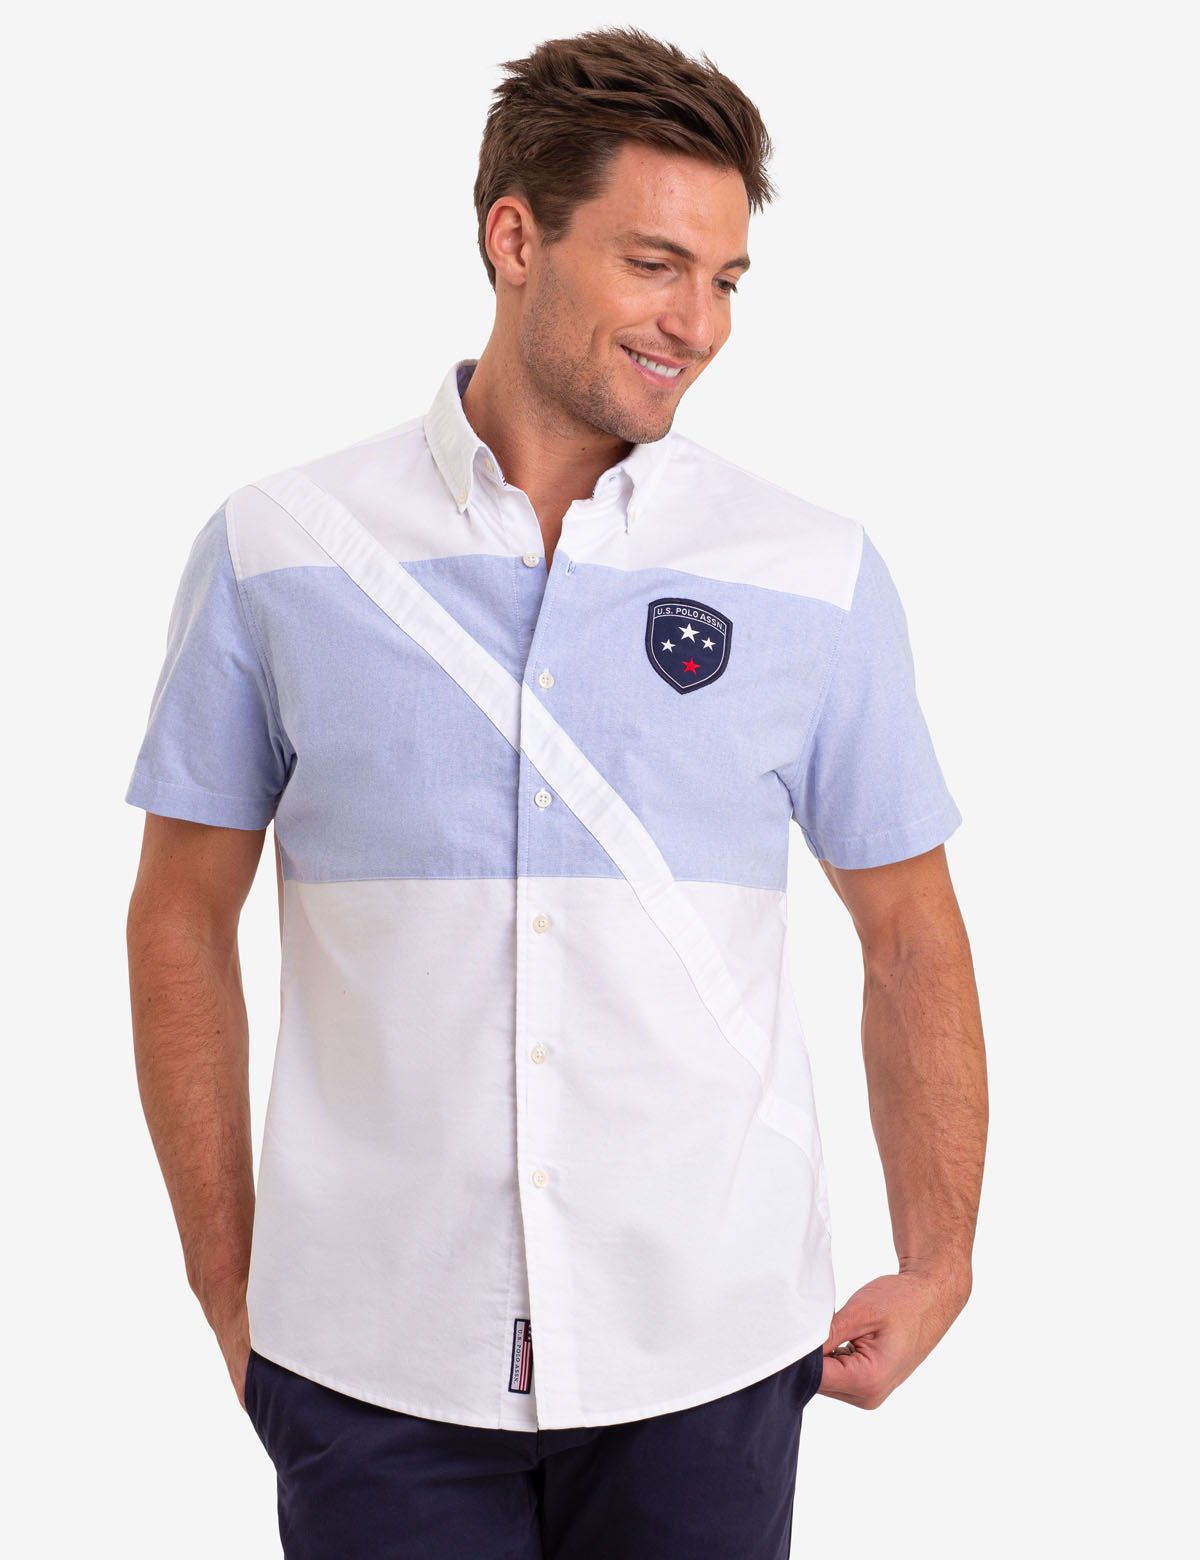 DIAGONAL STRIPE OXFORD SHORT SLEEVE SHIRT - U.S. Polo Assn.